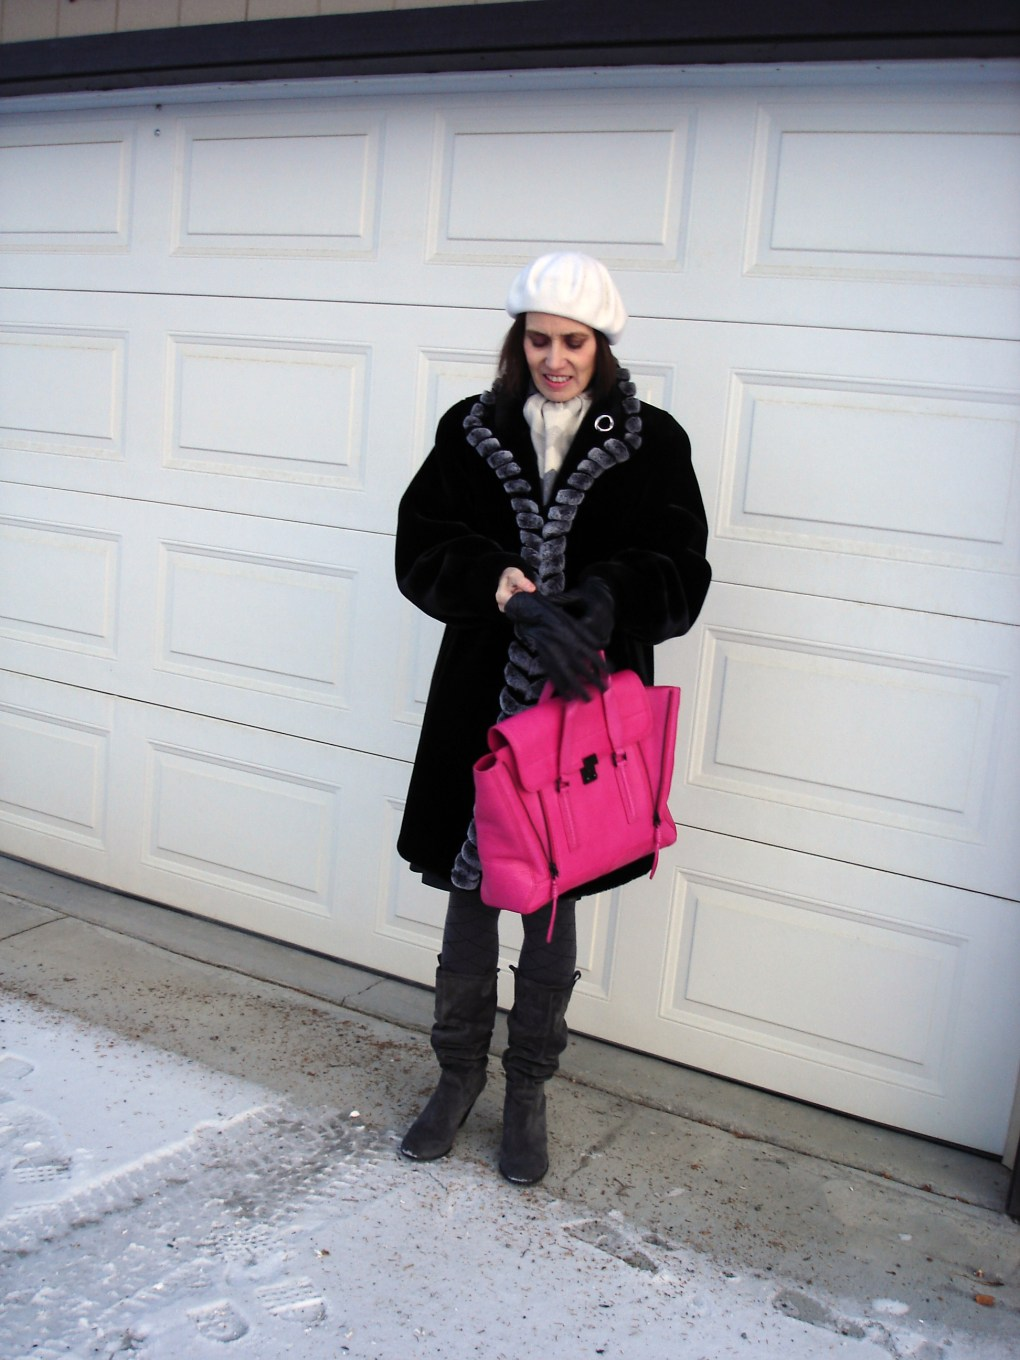 #advancedstyle woman in all neutral look with fuchsia 3.1 Philip Lim tote